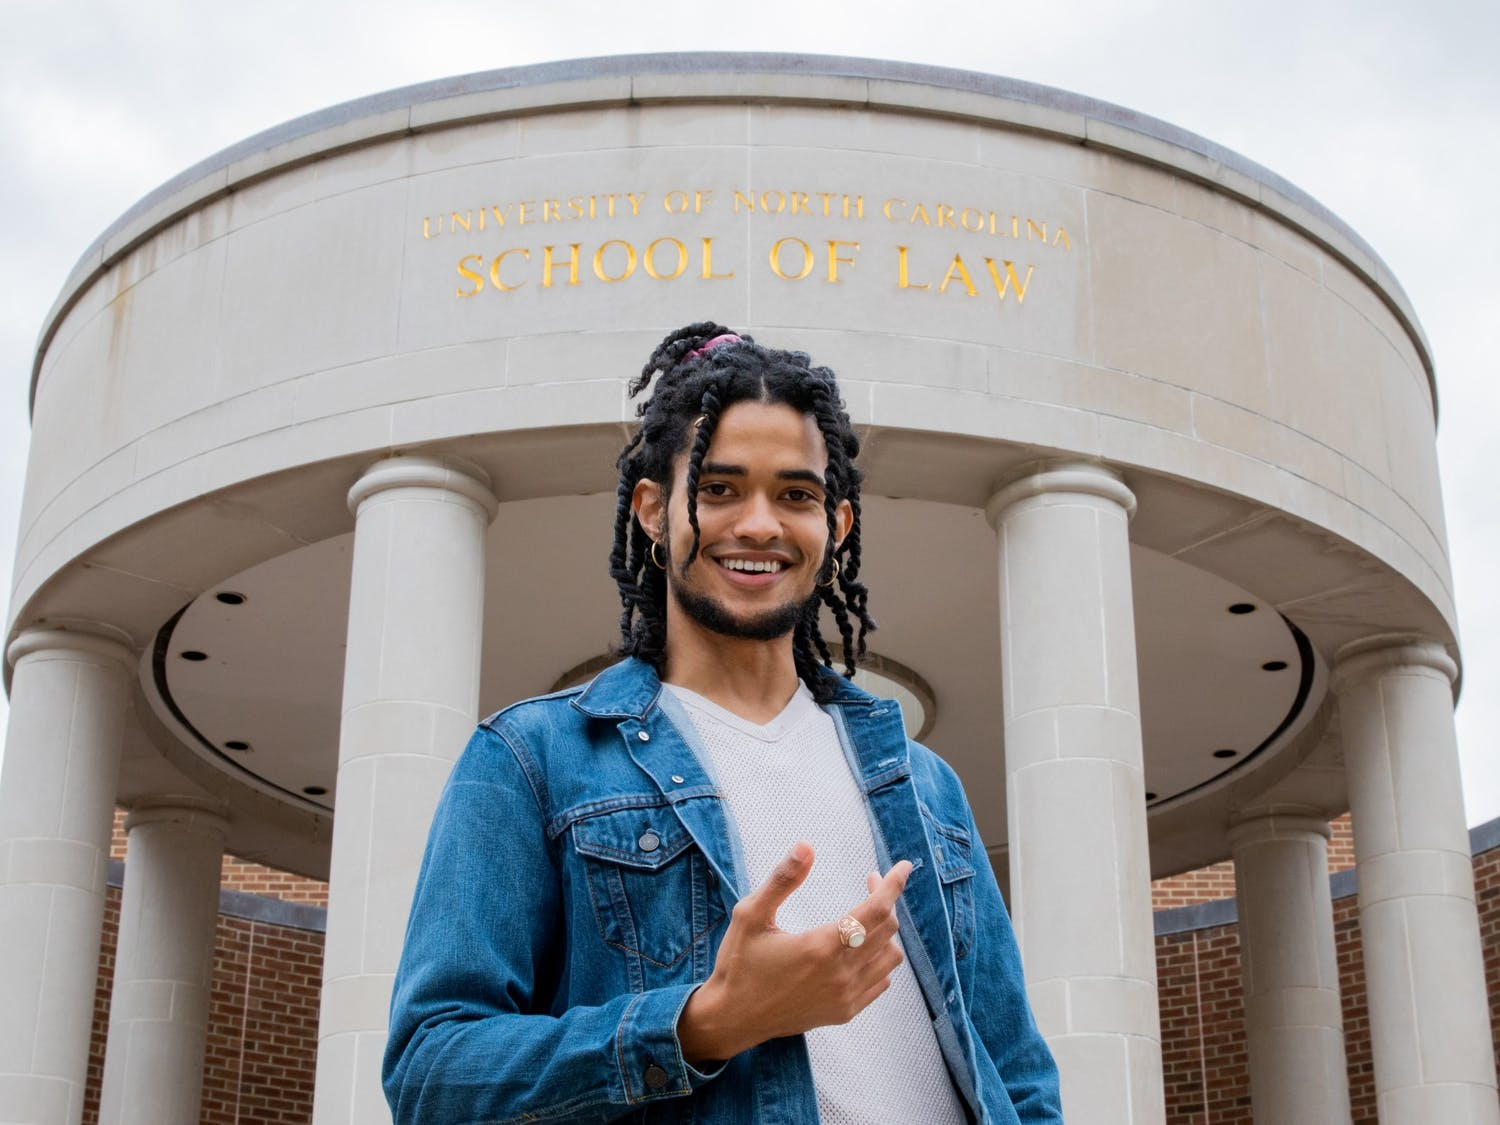 Zachary Boyce, a second-year UNC law student and candidate for Chapel Hill mayor, poses for a portrait in front of the Law School.